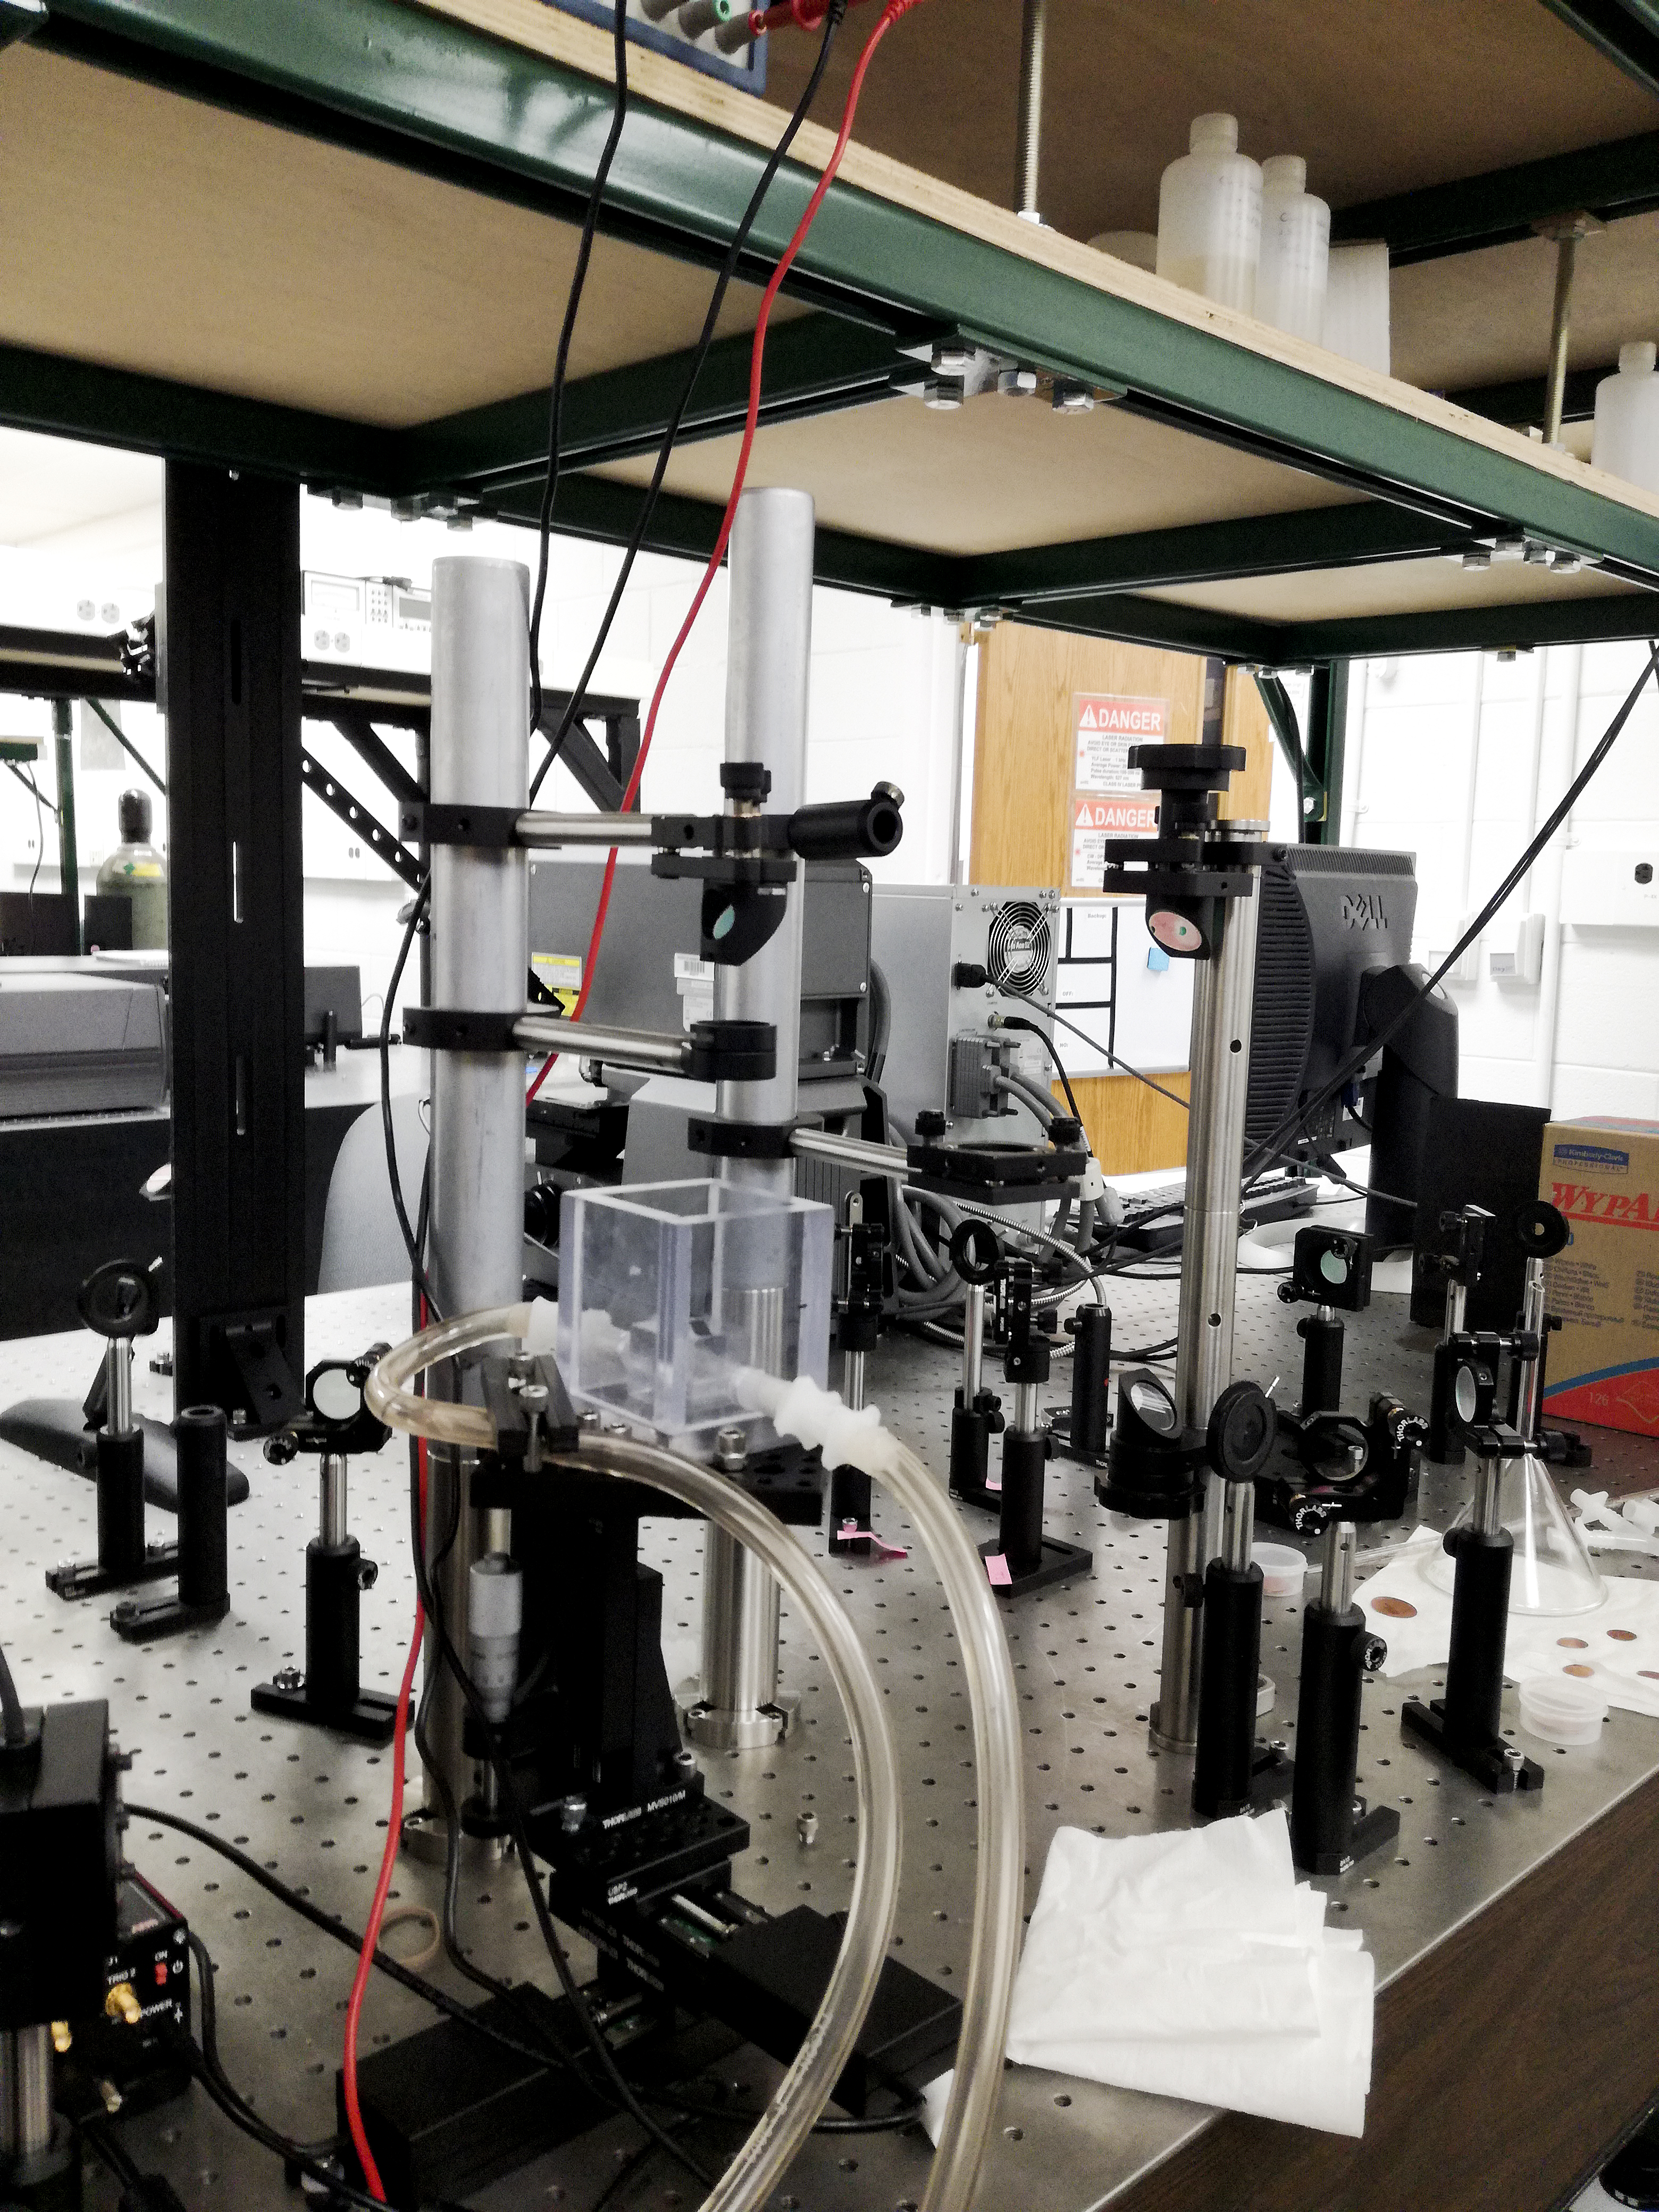 Part of the femtosecond laser setup in lab Prof. Chunlei Guo (photo courtesy of Rubins J. Spaans)